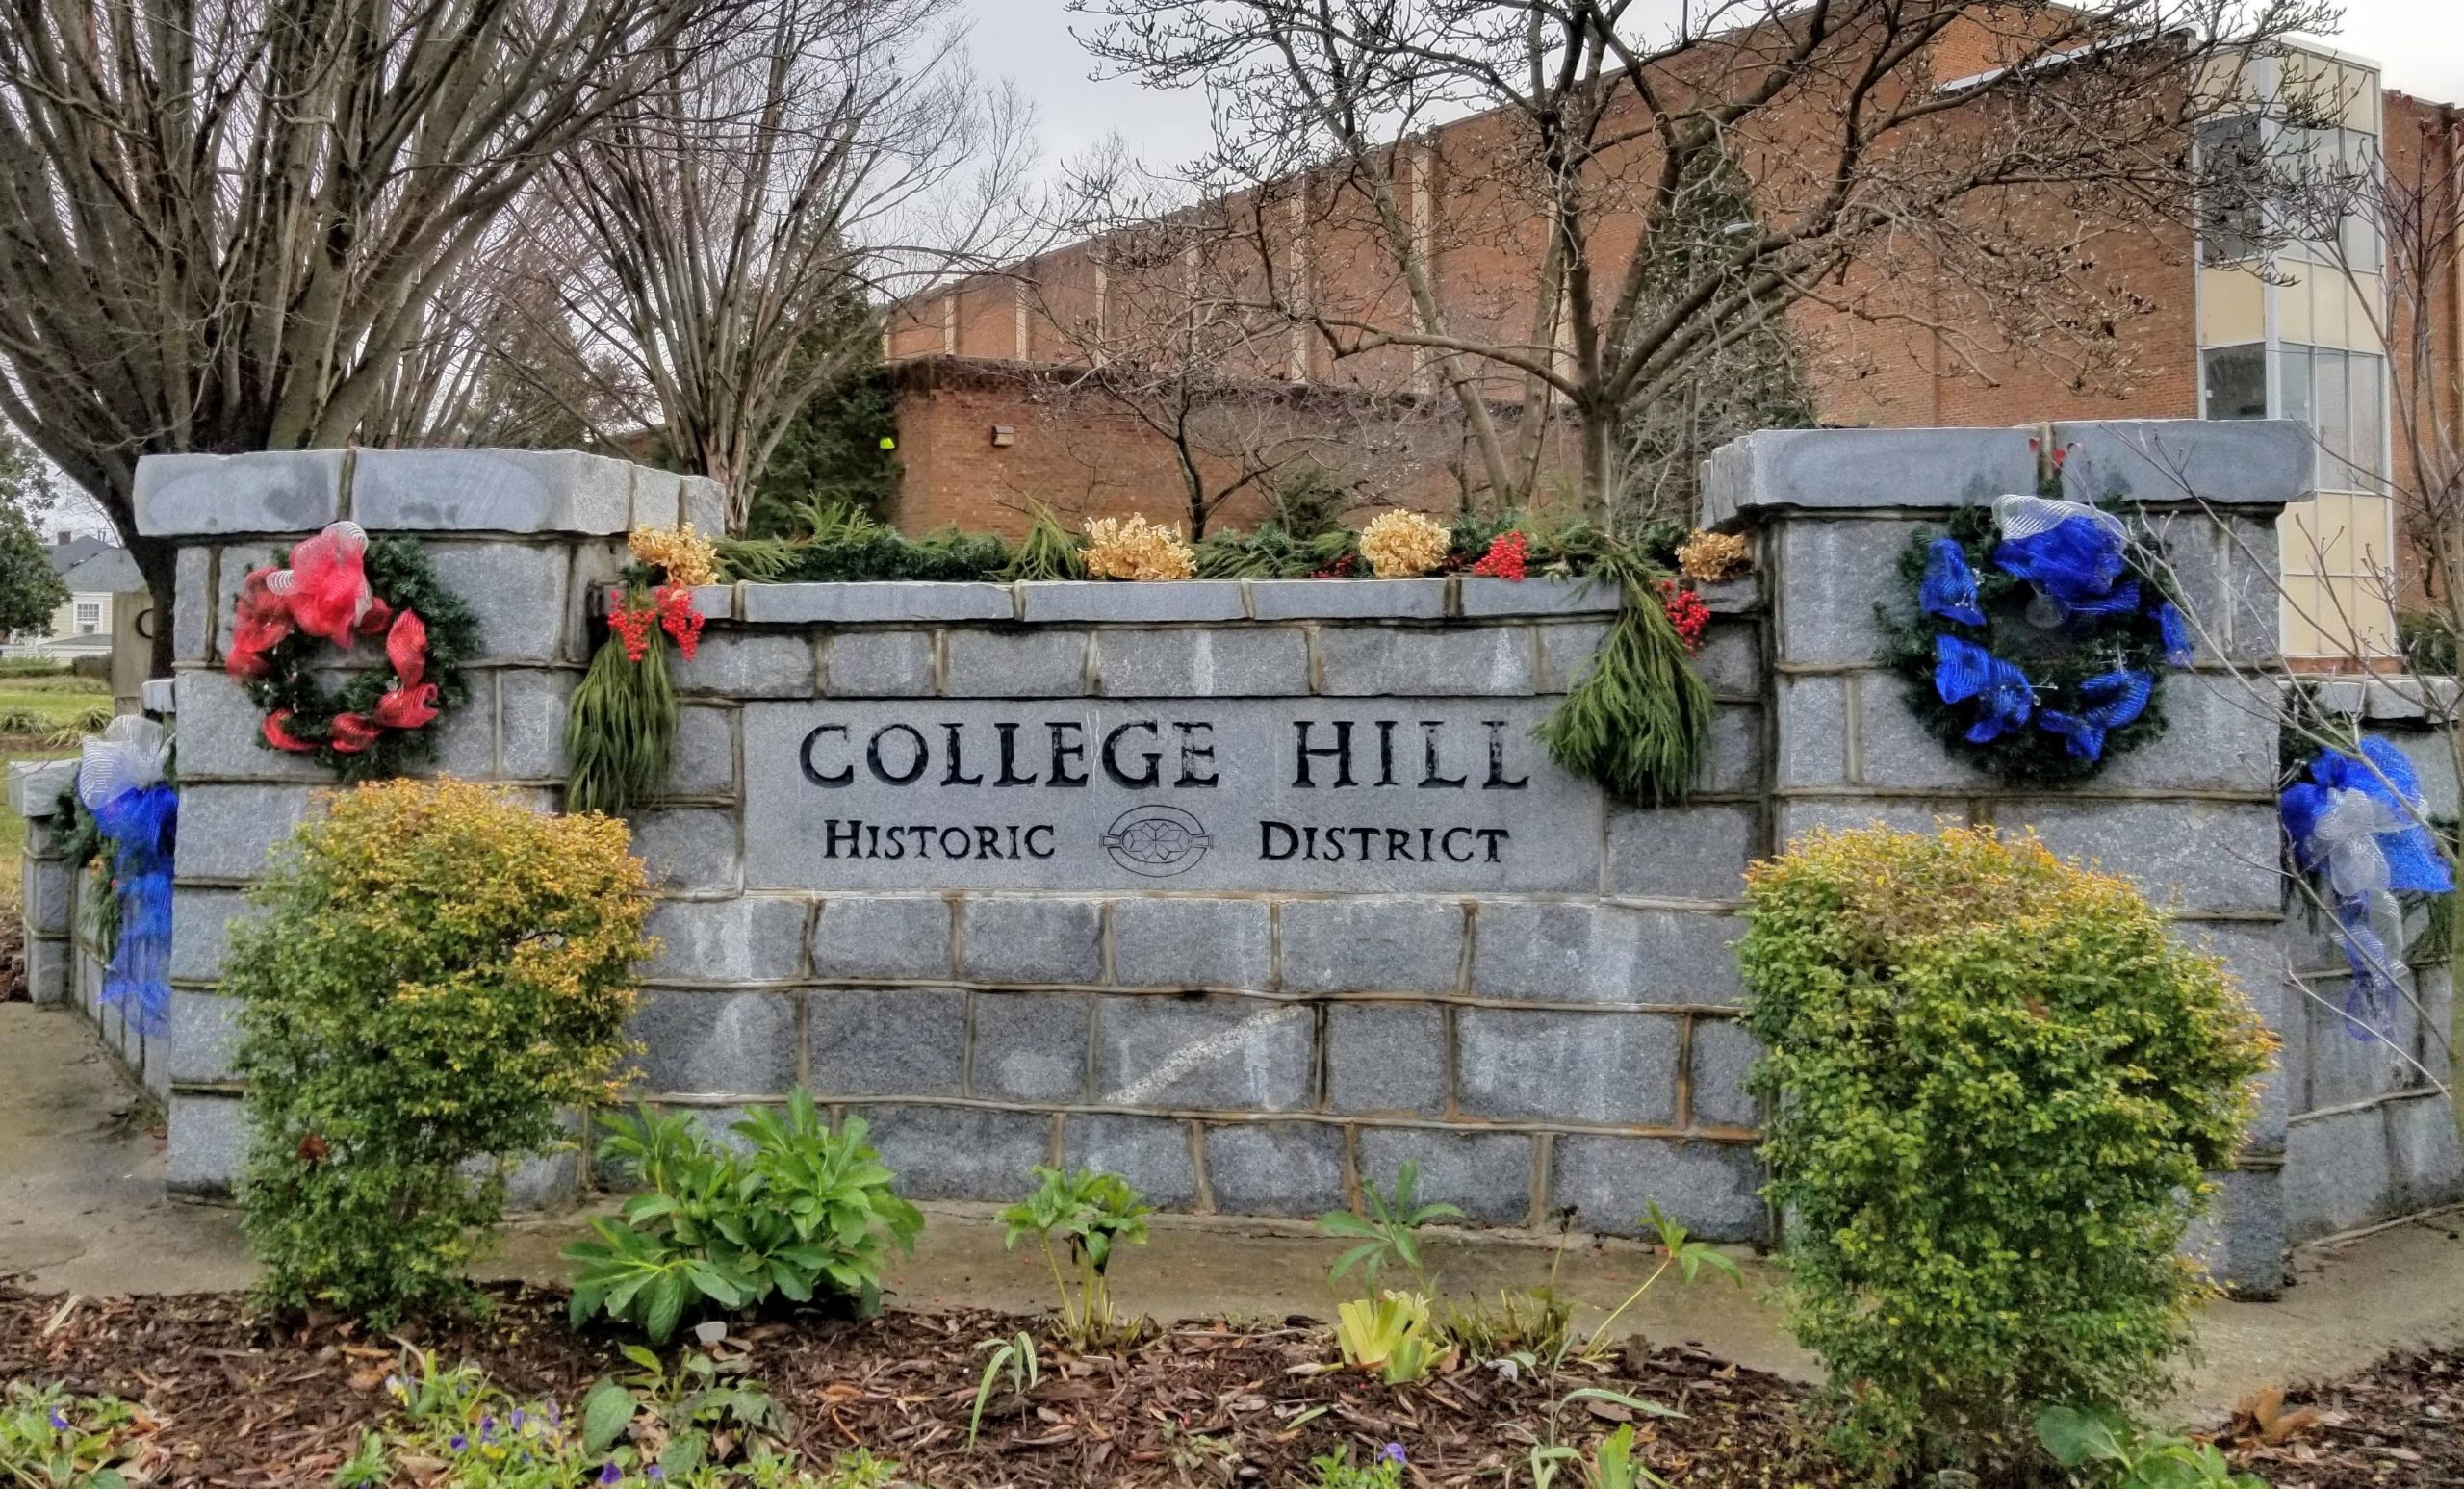 decorated College Hill sign at Market and Tate streets